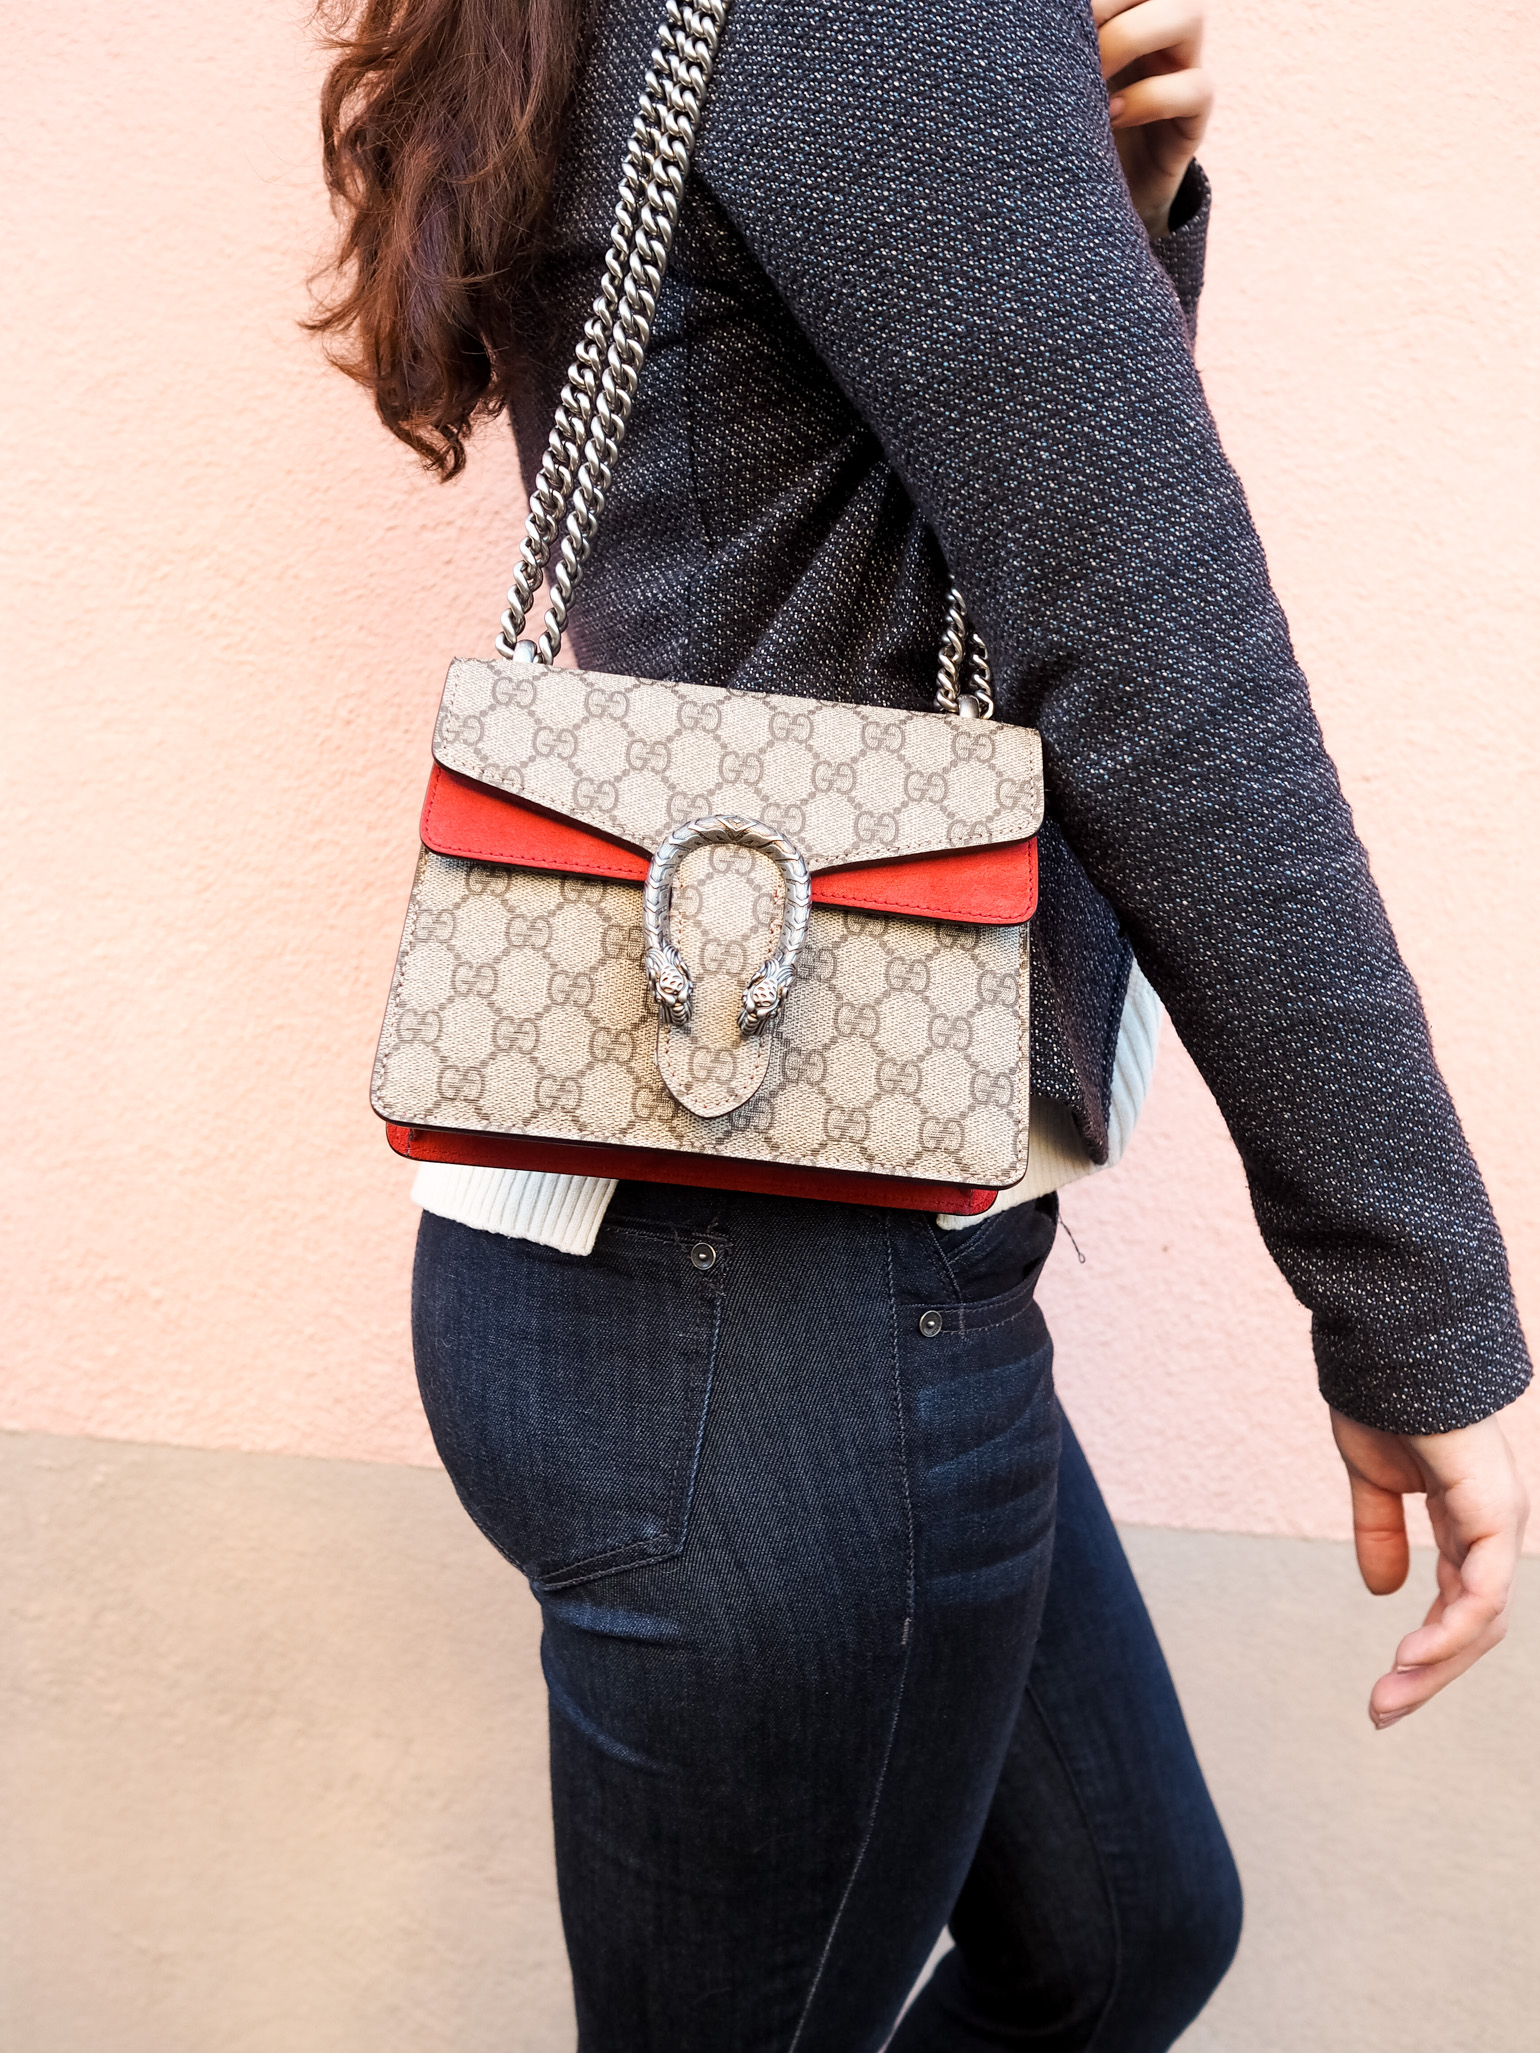 Cristina from The Brunette Nomad, a Dallas fashion blogger living in Switzerland, reveals her Gucci Dionysus Mini on the blog